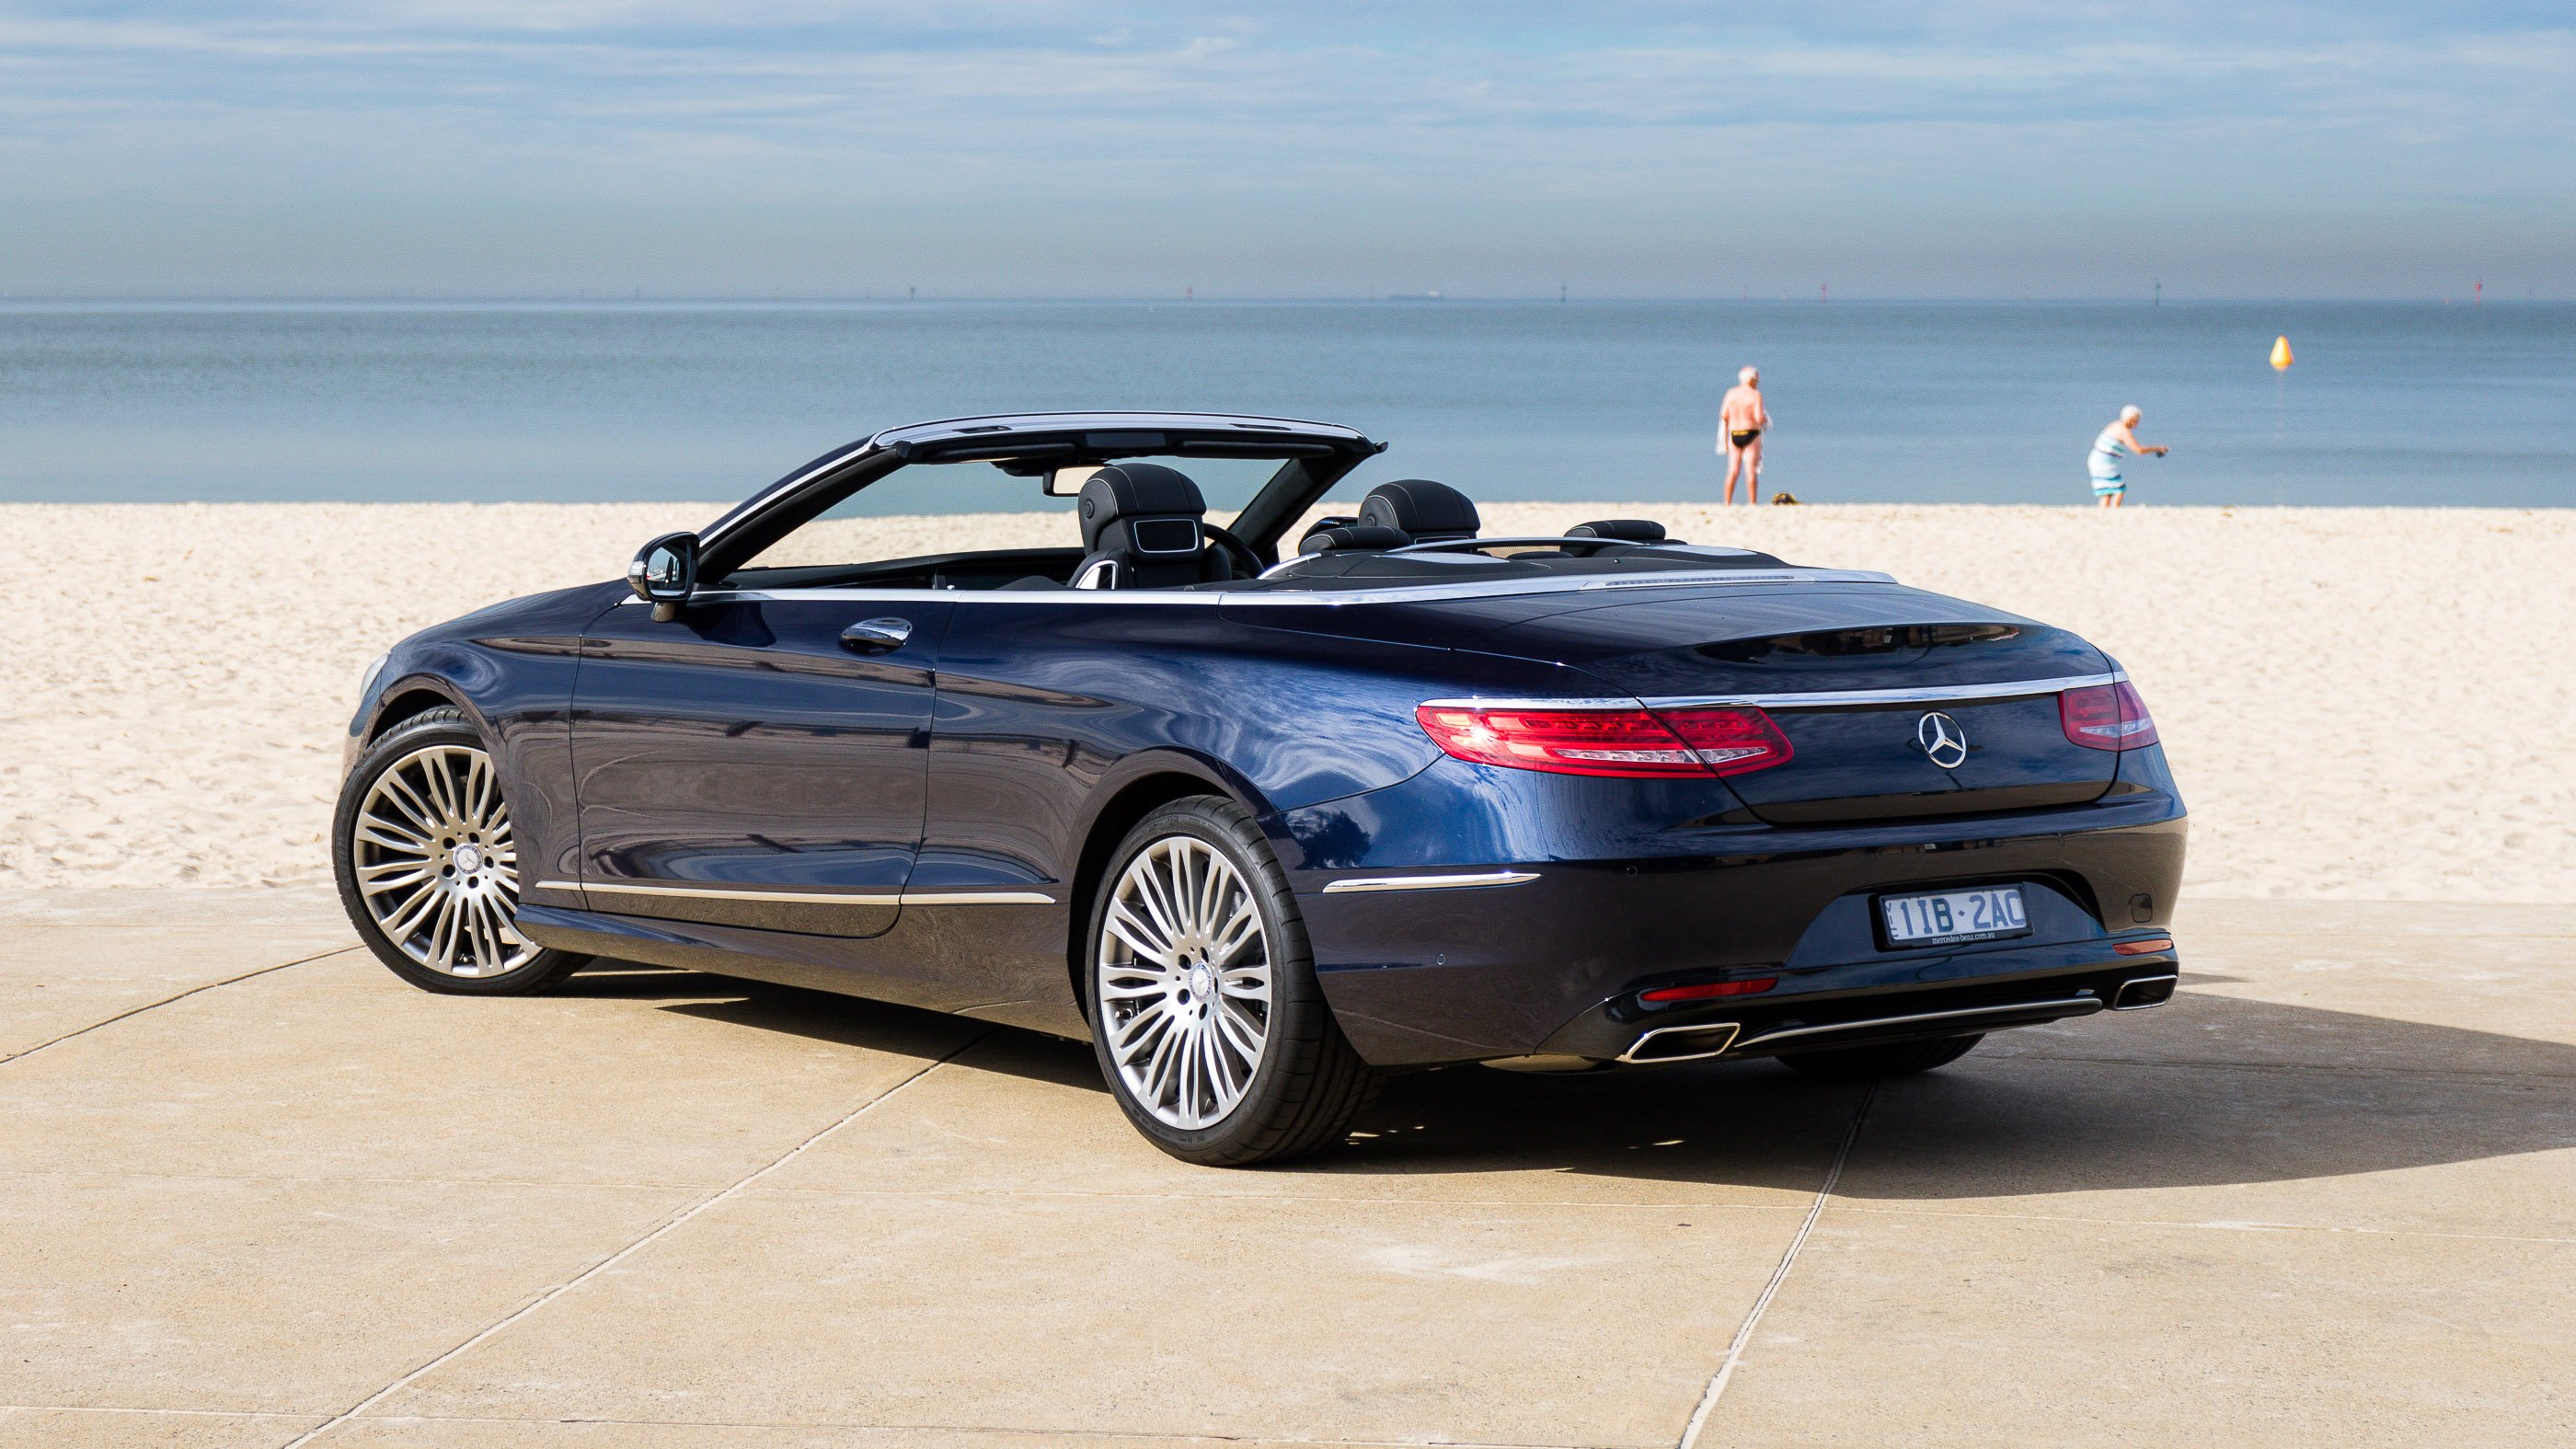 2017 mercedes benz s500 cabriolet review caradvice for Convertible mercedes benz 2017